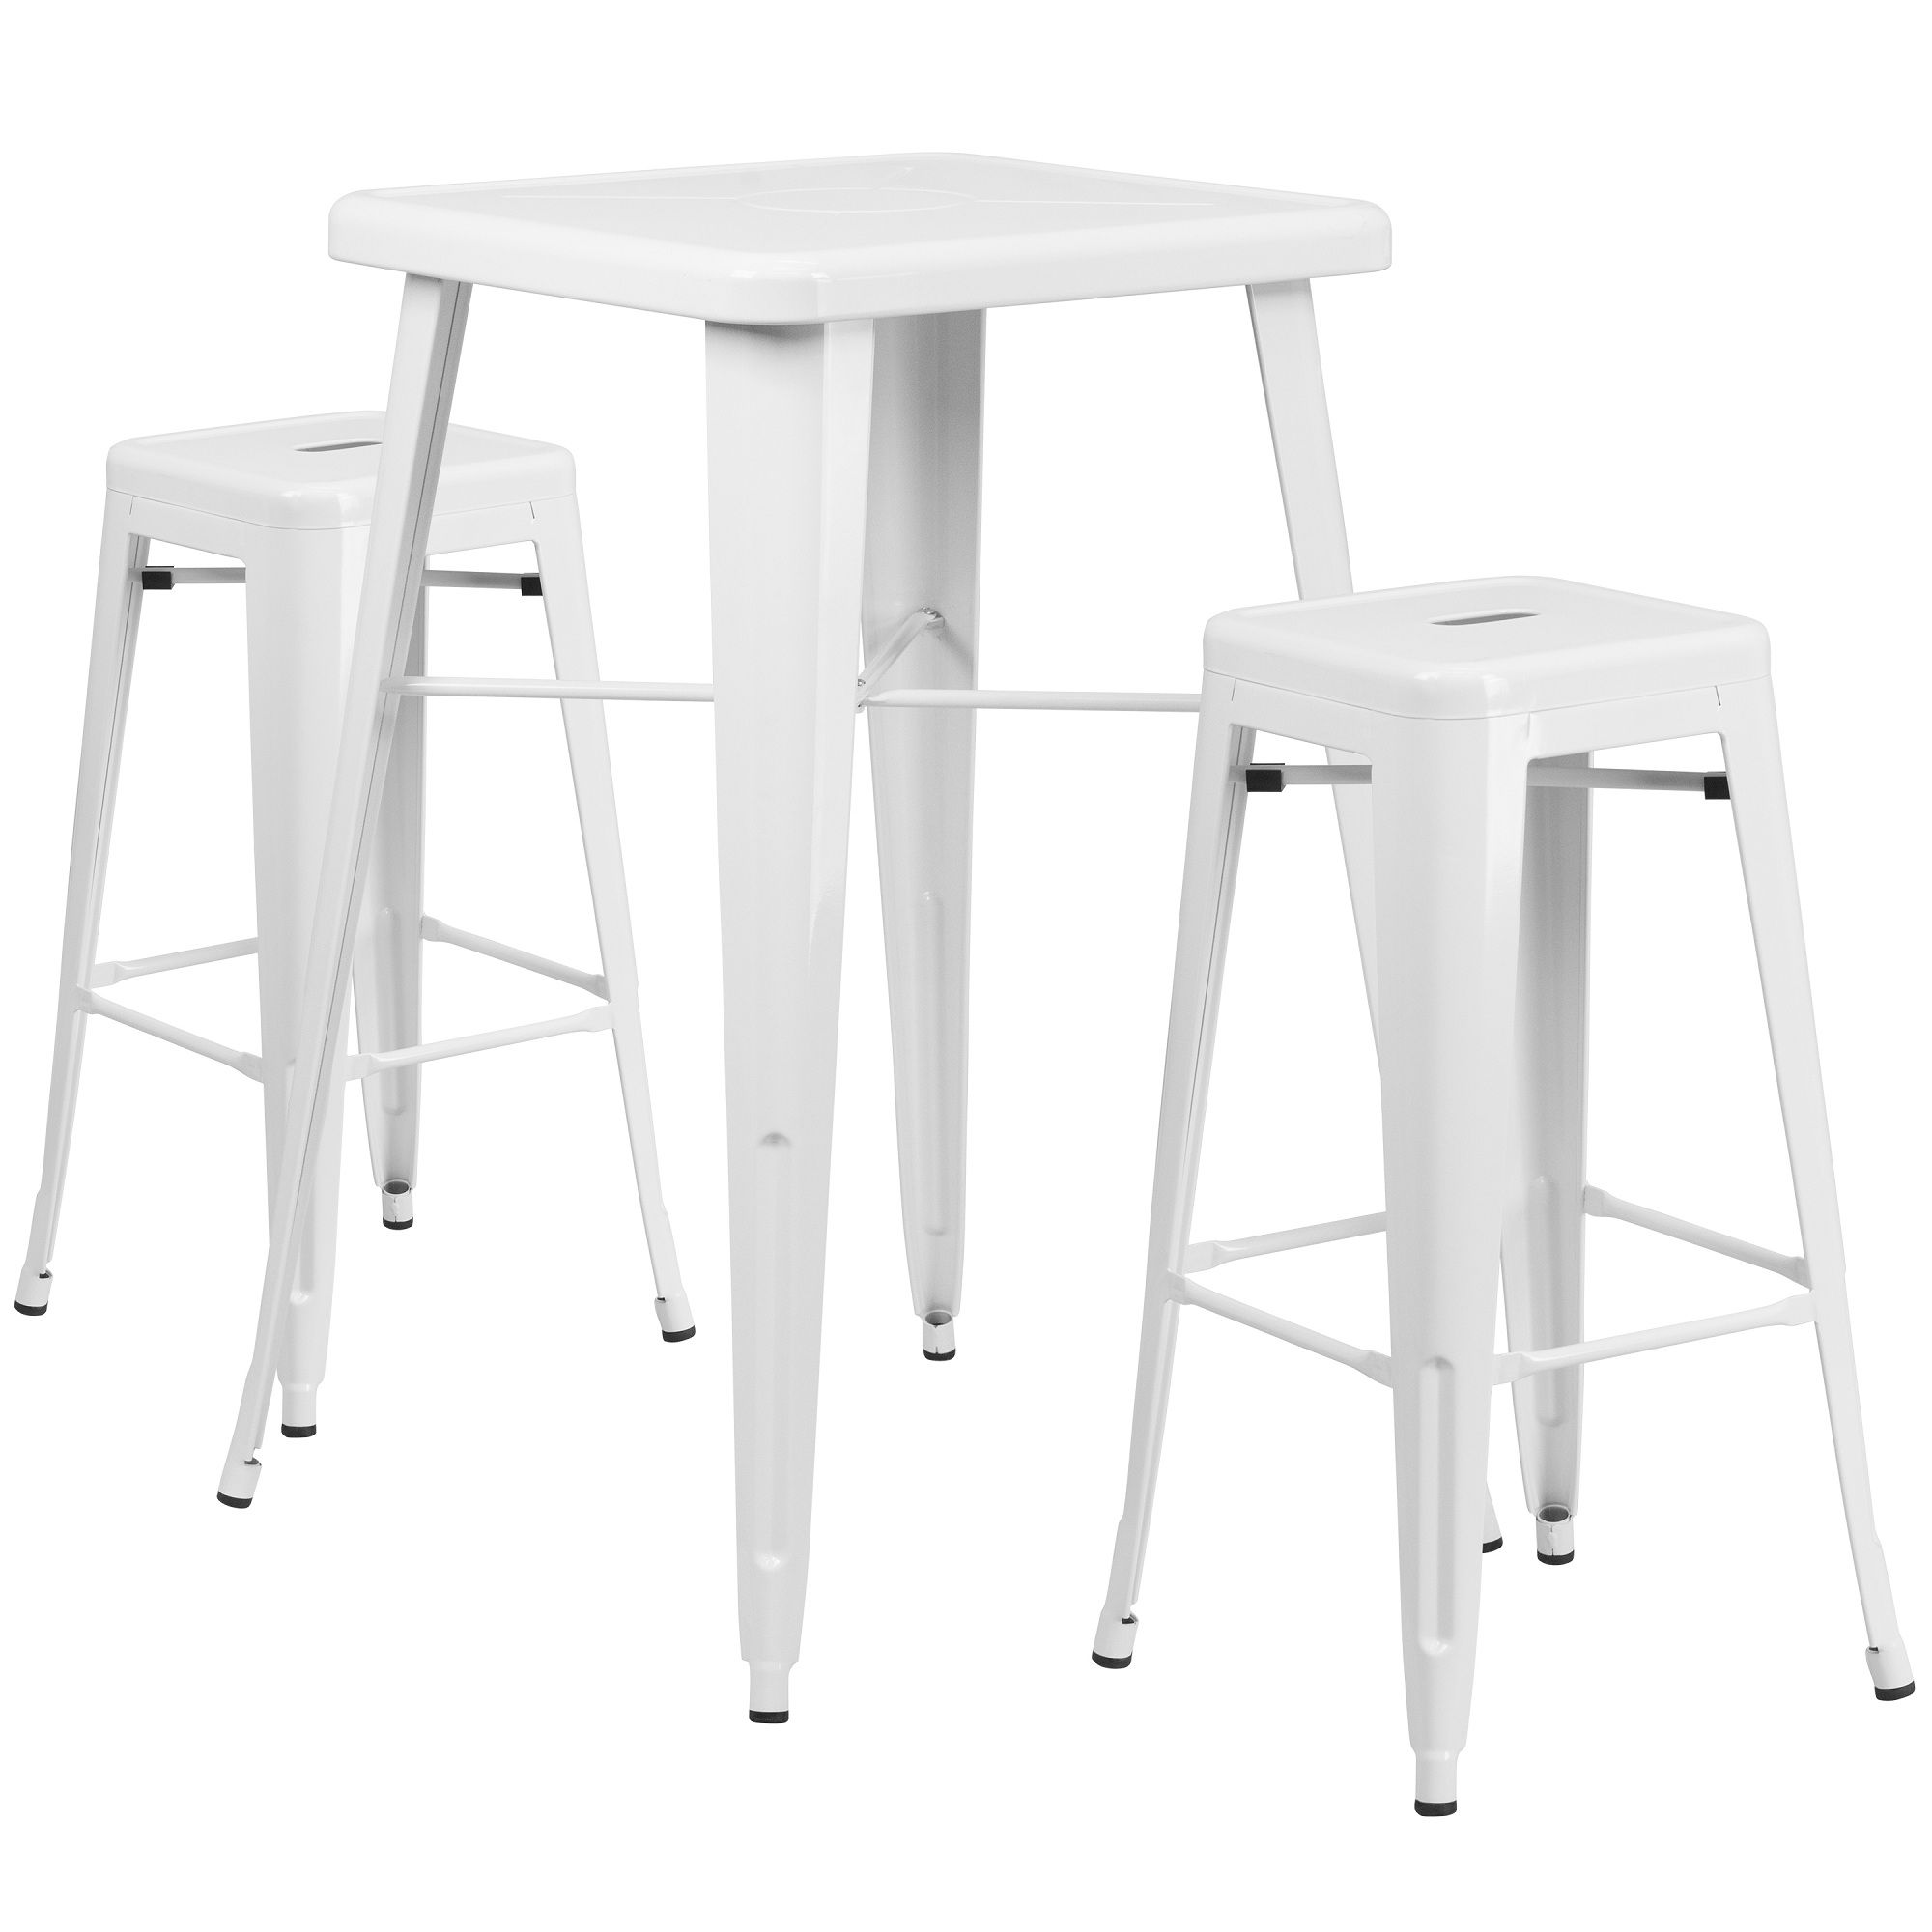 Set Of 3 White Metal Square Bar Stools And Bar Height Table 40 Outdoor Bar Table Bar Table Sets Backless Bar Stools